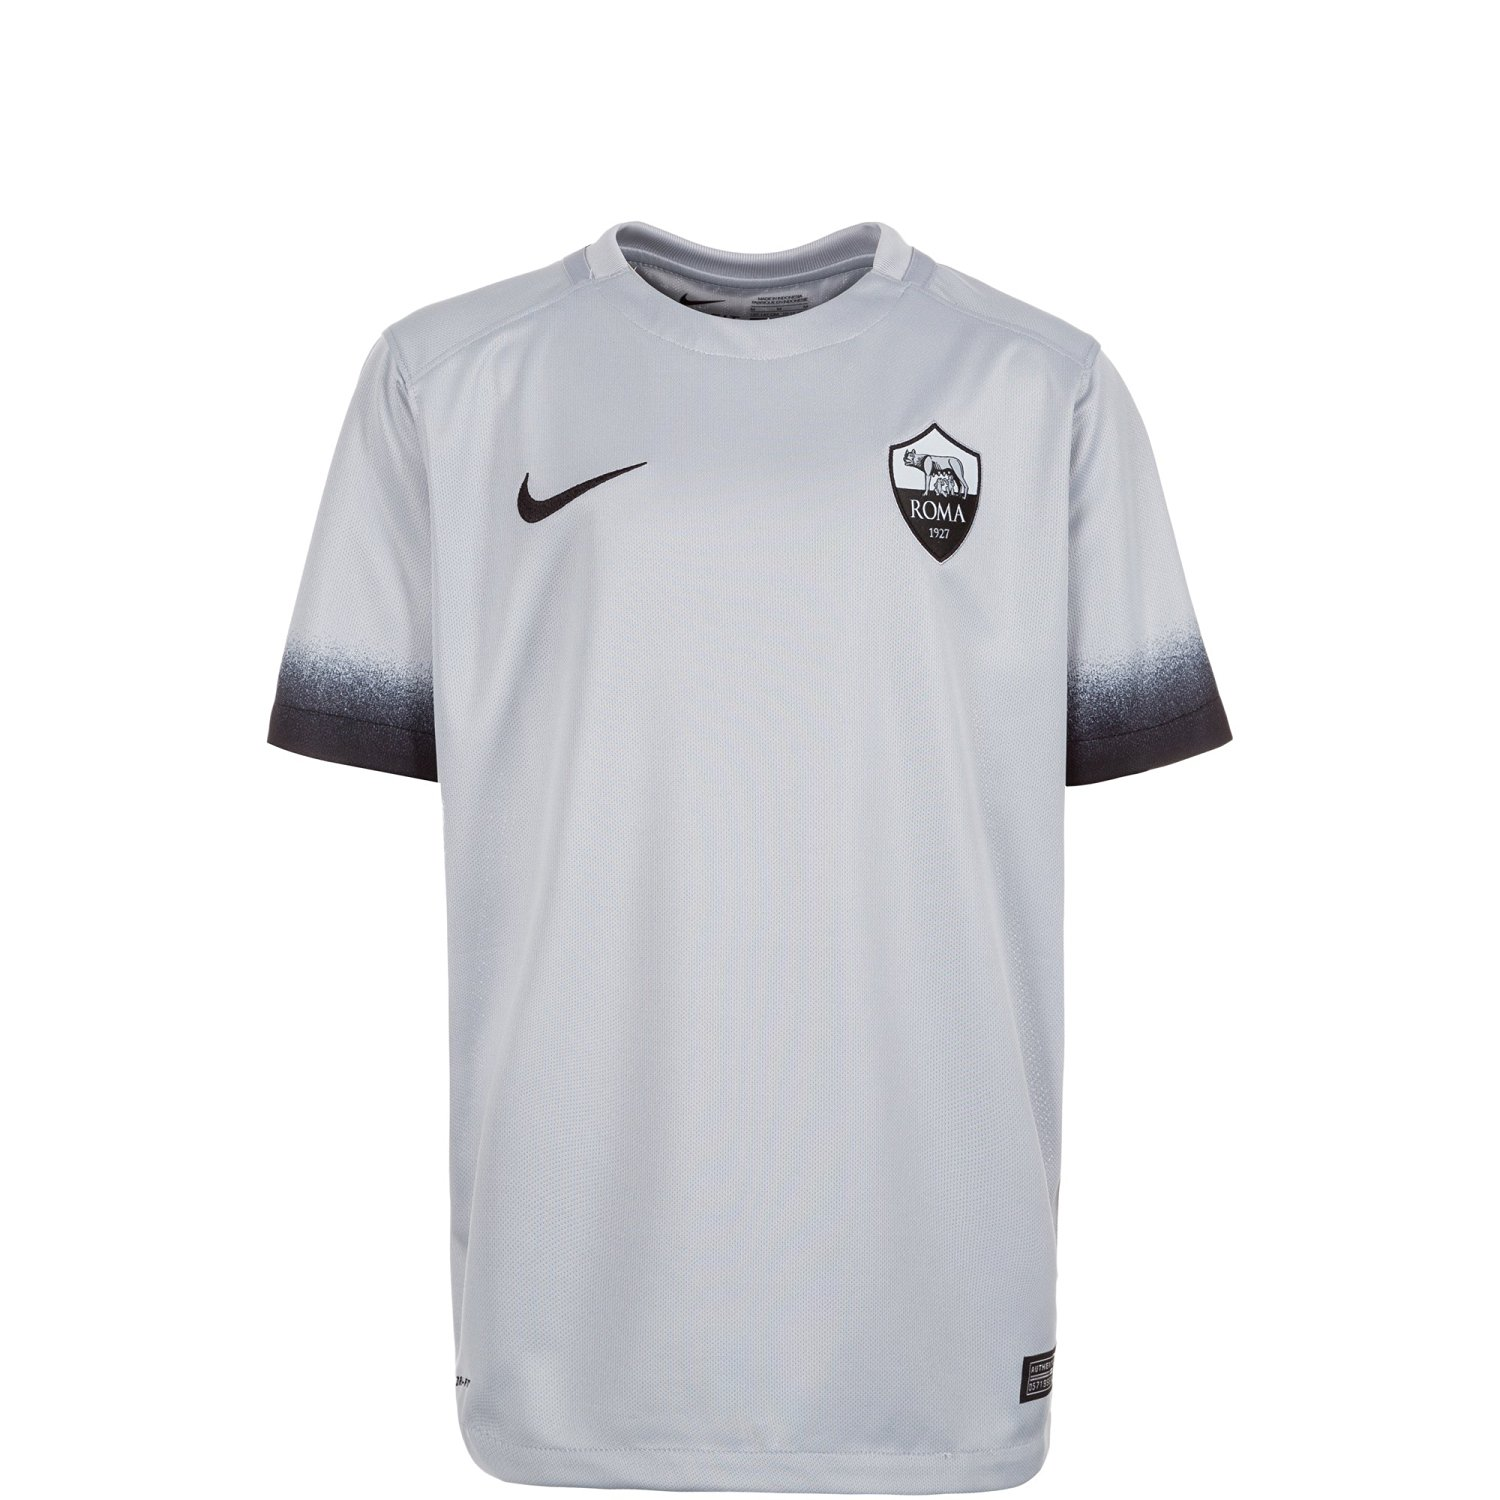 innovative design da483 75eaa Cheap As Roma Jersey, find As Roma Jersey deals on line at ...